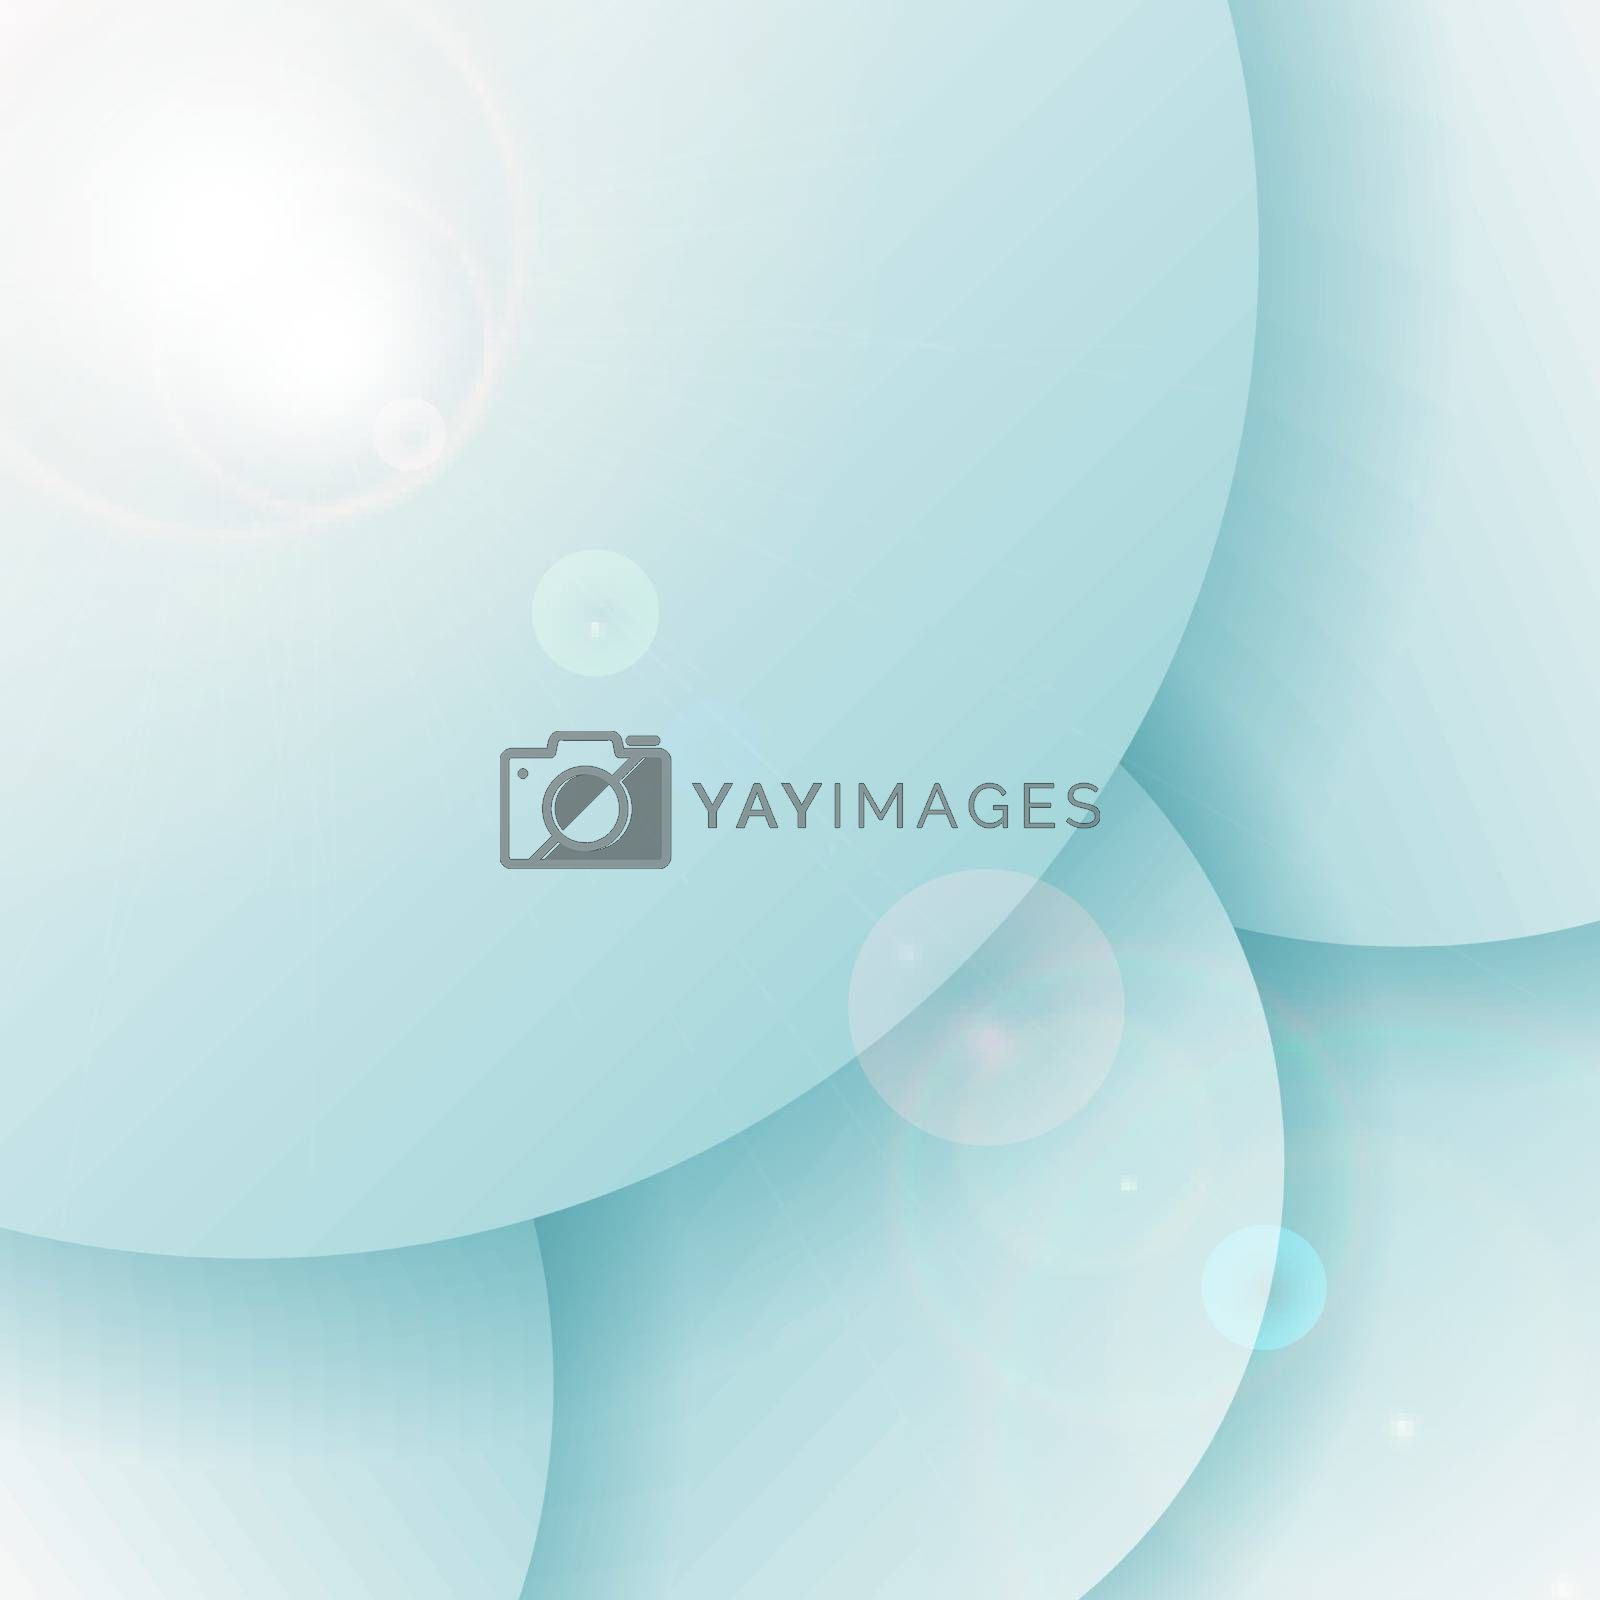 Abstract 3D blue circles overlapping layer background with lighting flare. Vector illustration